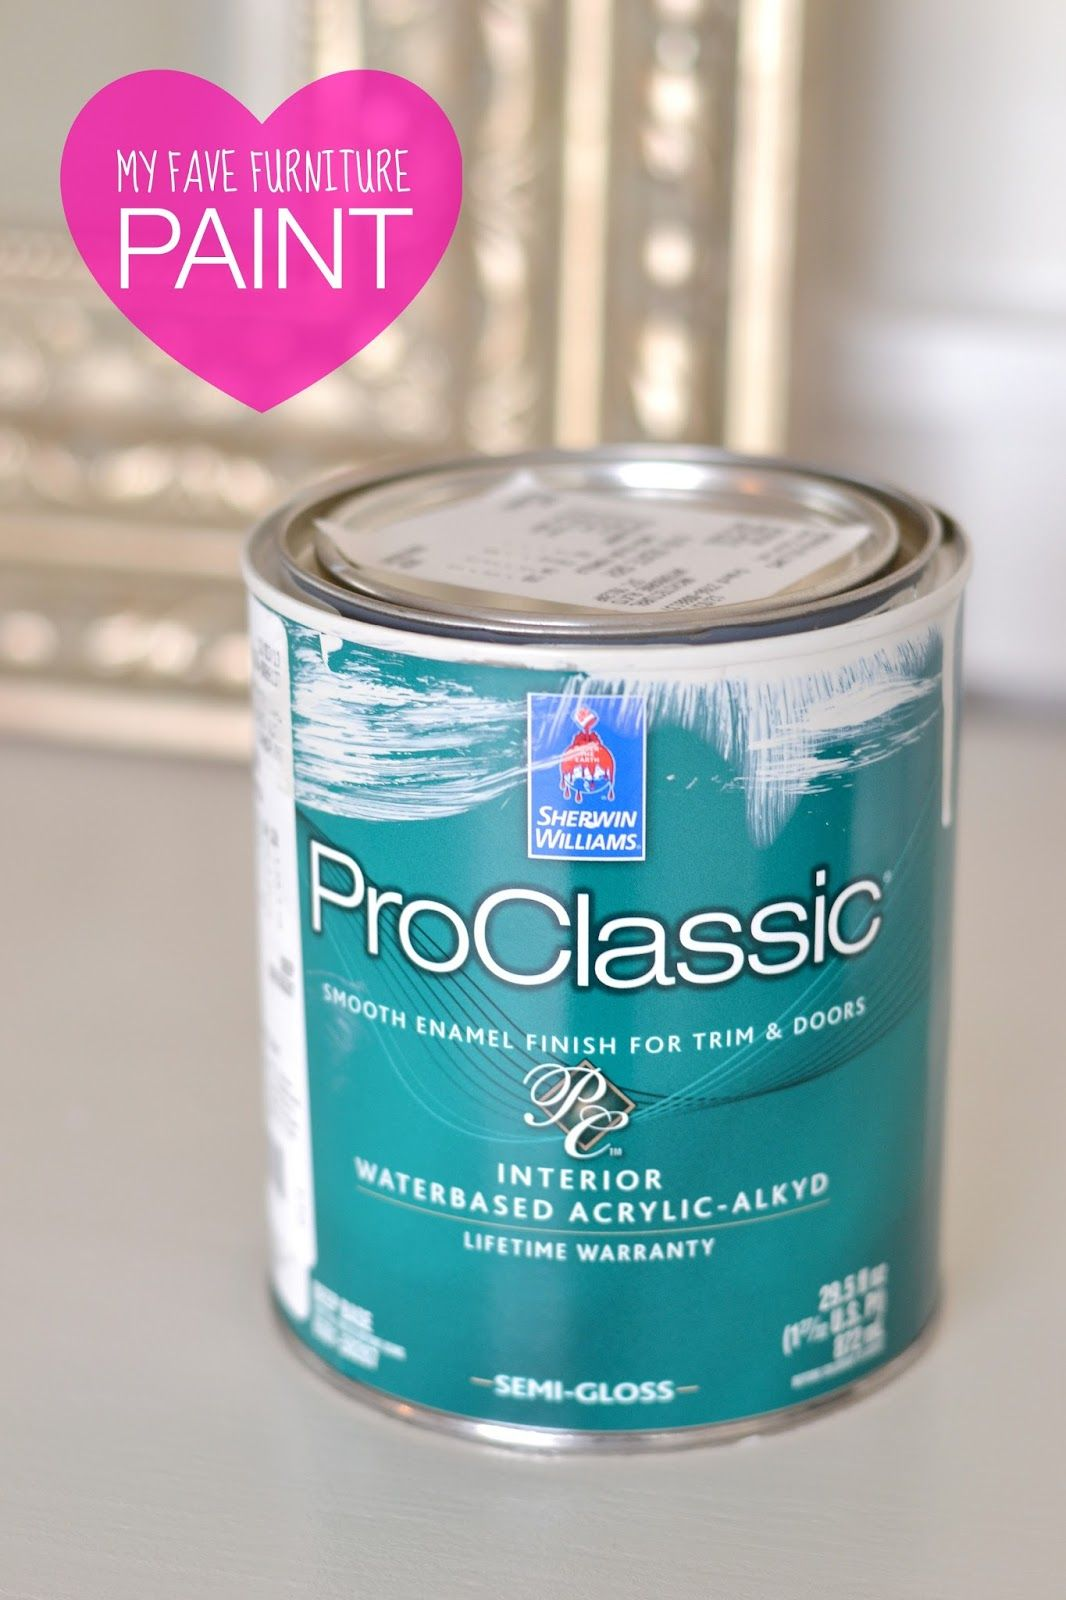 My Secret Weapon When It Comes To Painting Furniture Like A Pro! Shermin  Williams Proclassic Smooth Enamel Finish (waterbased Acrylic)